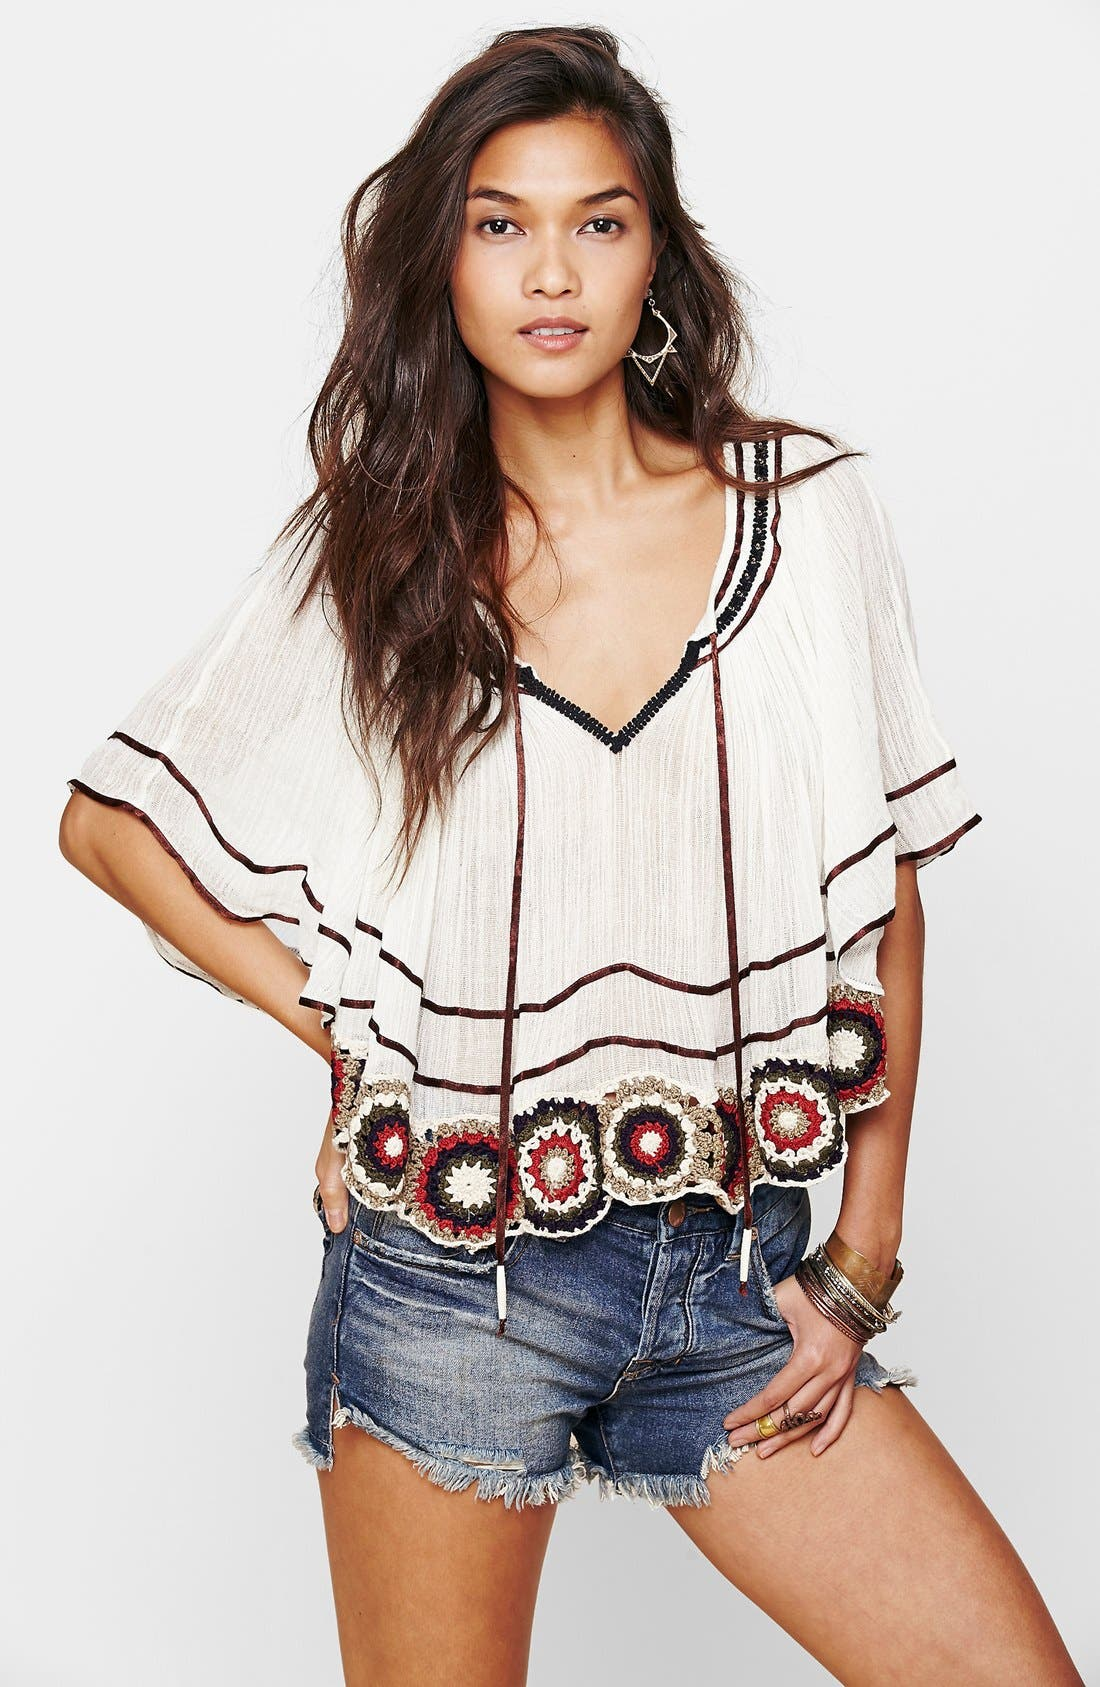 Main Image - Free People 'The Way She Moves' Crocheted Cotton Top